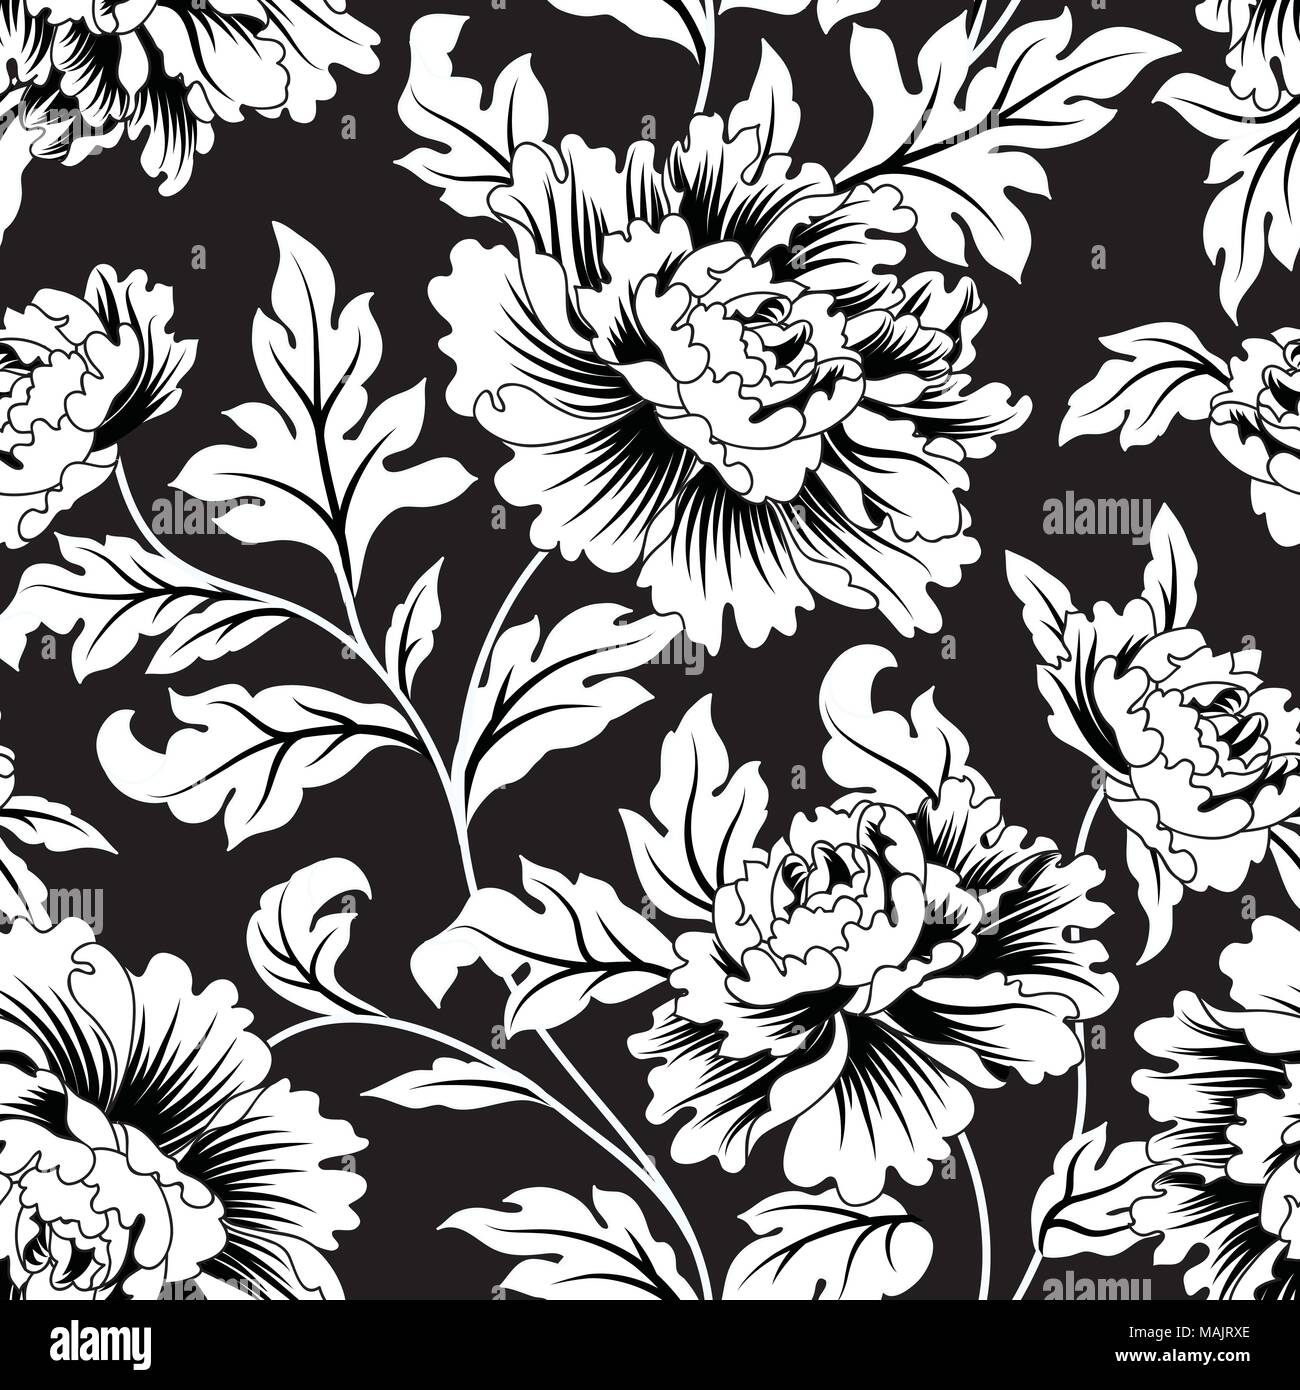 Floral Seamless Pattern Abstract Ornamental Flowers Flourish Leaves Background Stock Vector Image Art Alamy